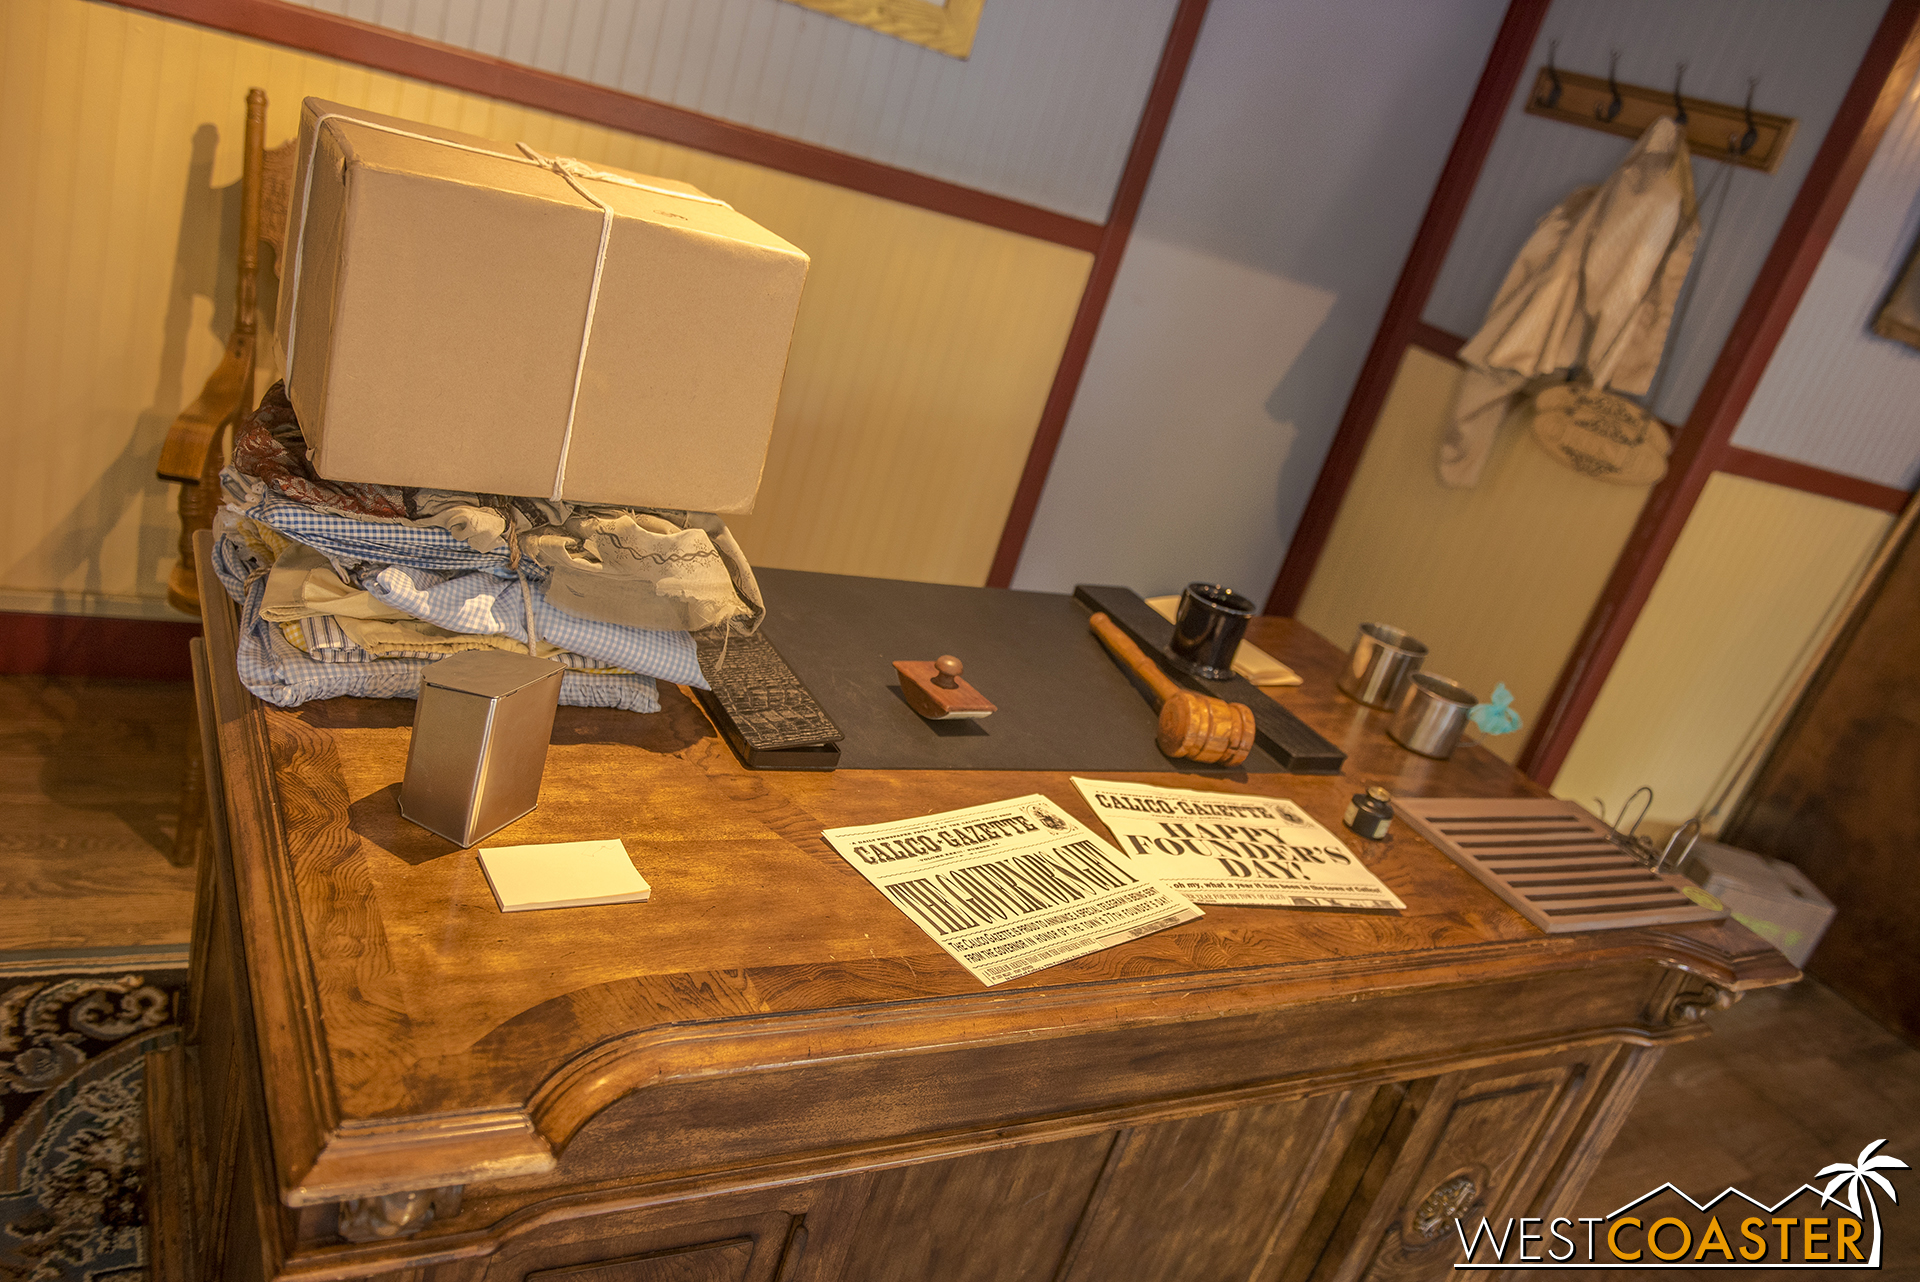 Guests can come in and interact with various Calico officials or take a look at some newly arrived artifacts.